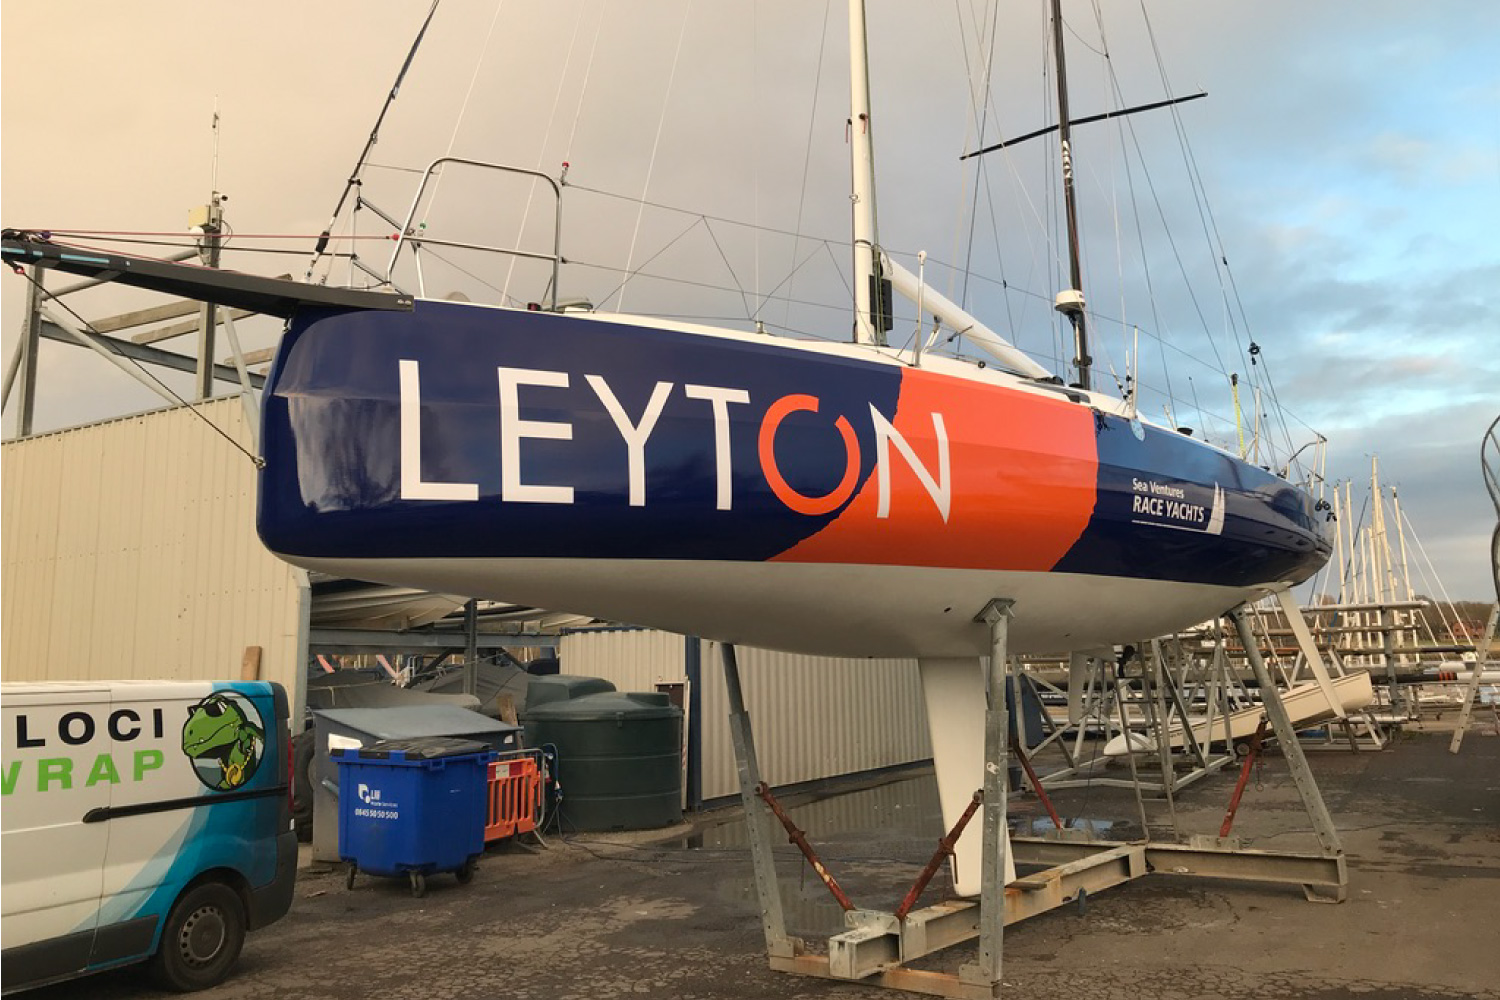 LEYTON Sponsored Sunfast 3300 Sailing Boat With A Full Vinyl Yacht Hull Wrap